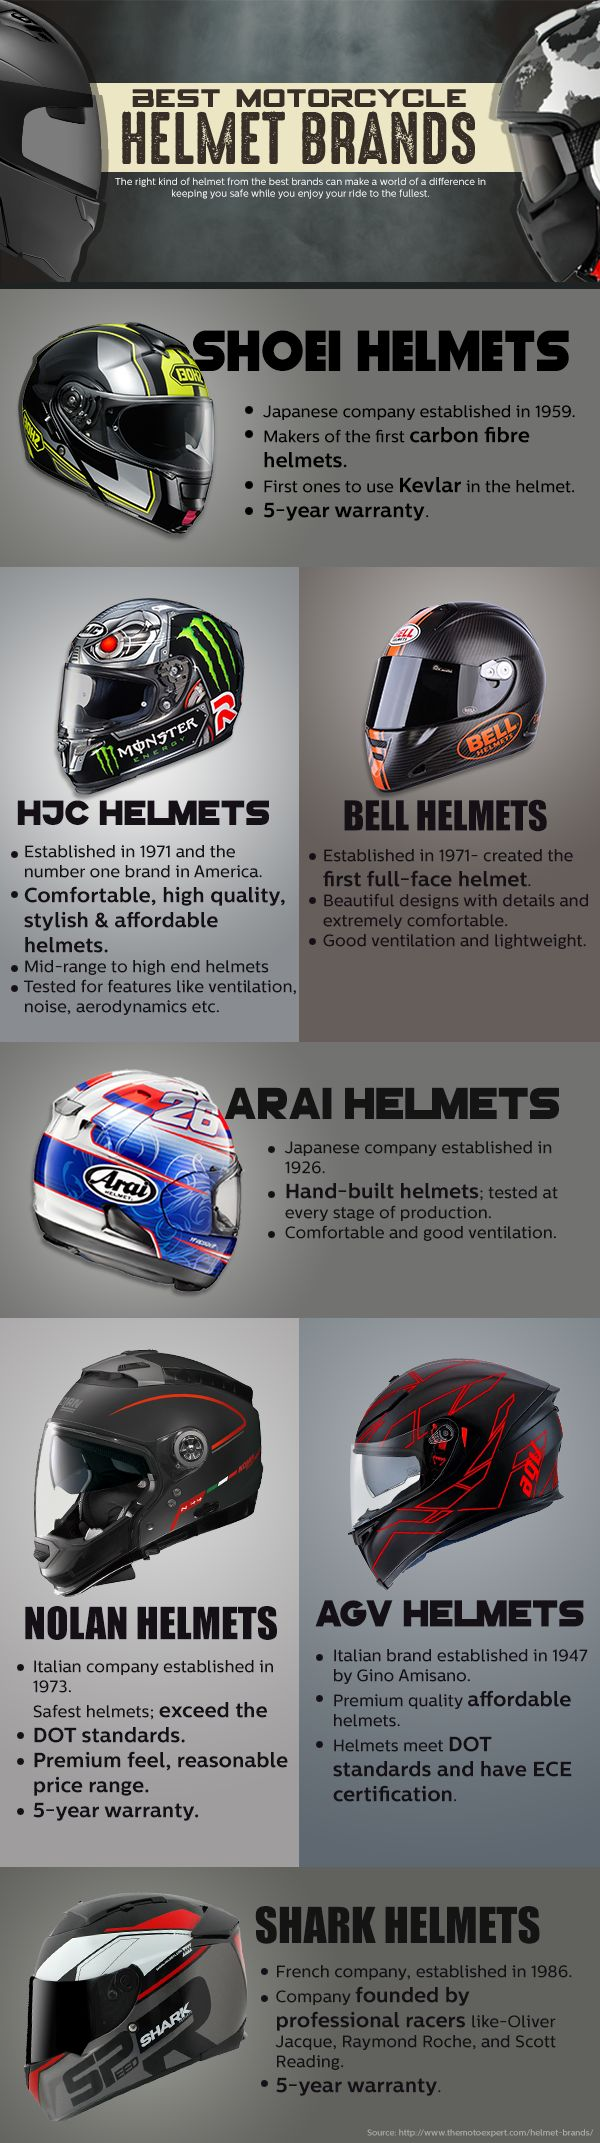 Best Motorcycle Helmet Brands - The right kind of helmet from the best brands can make a world of a difference in keeping you safe while you enjoy your ride to the fullest.